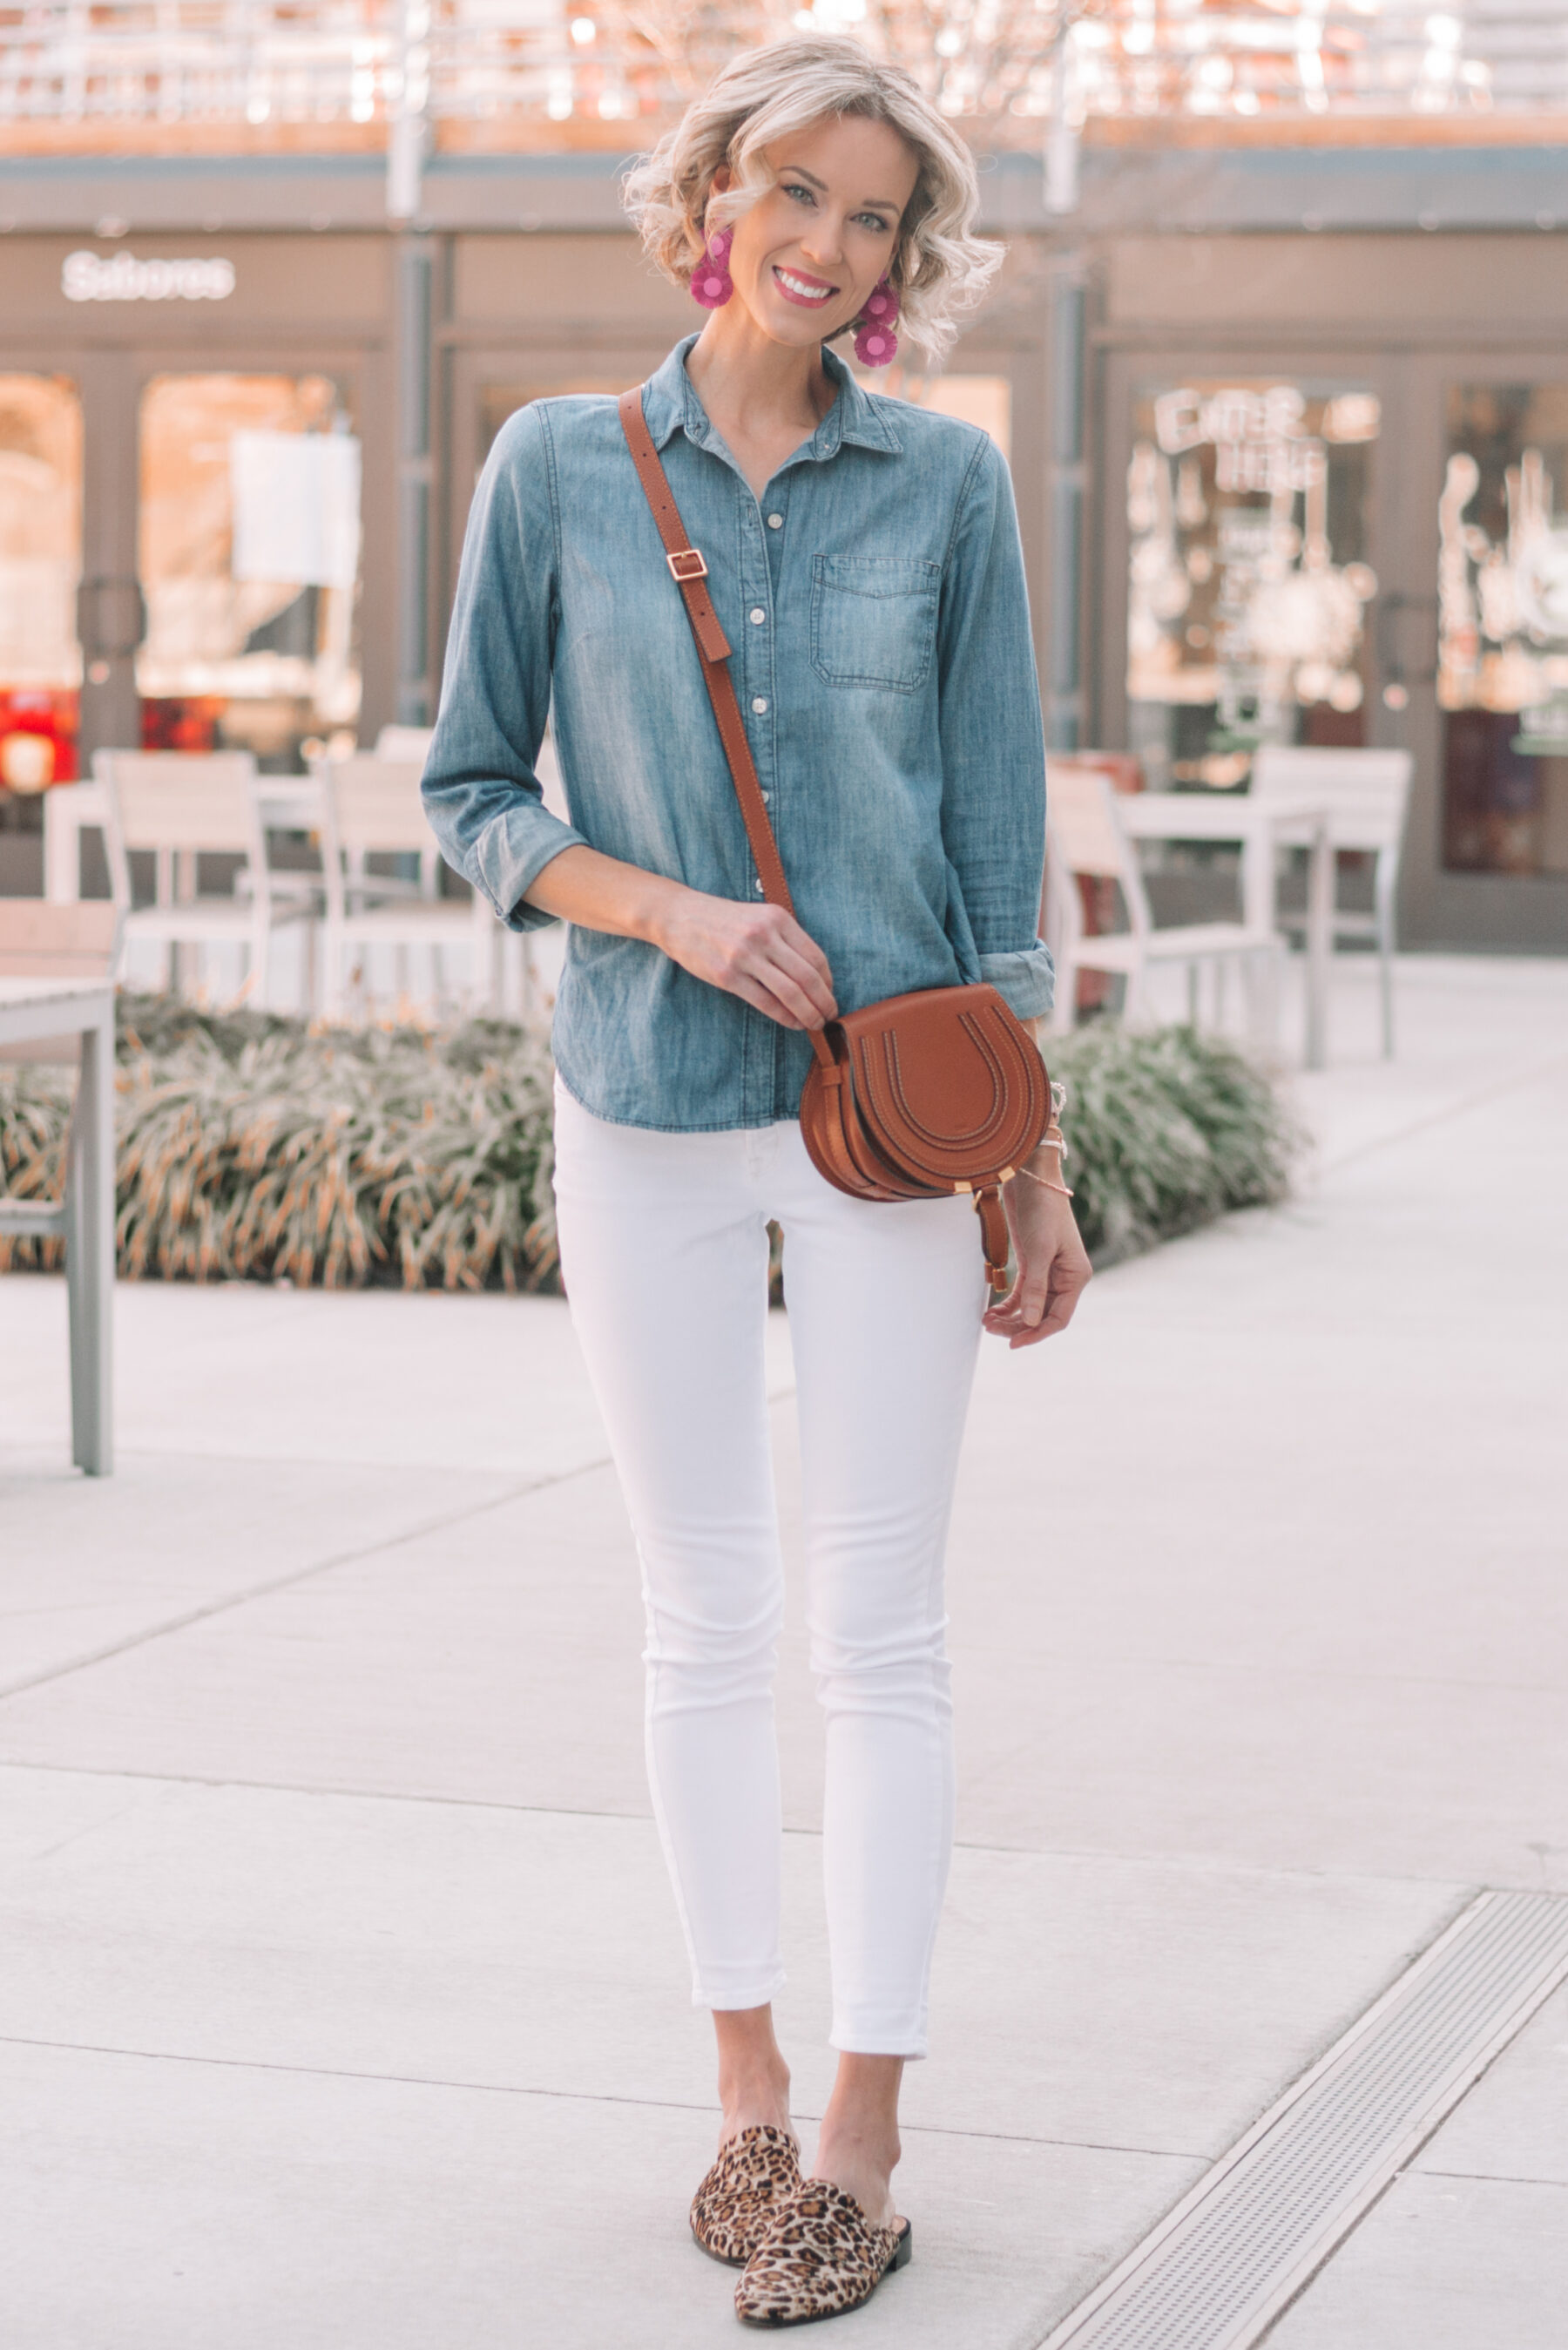 516cd11f3b33 ... mini casual capsule wardrobe, 13 pieces, 10 outfits - white jeans and  chambray shirt ...